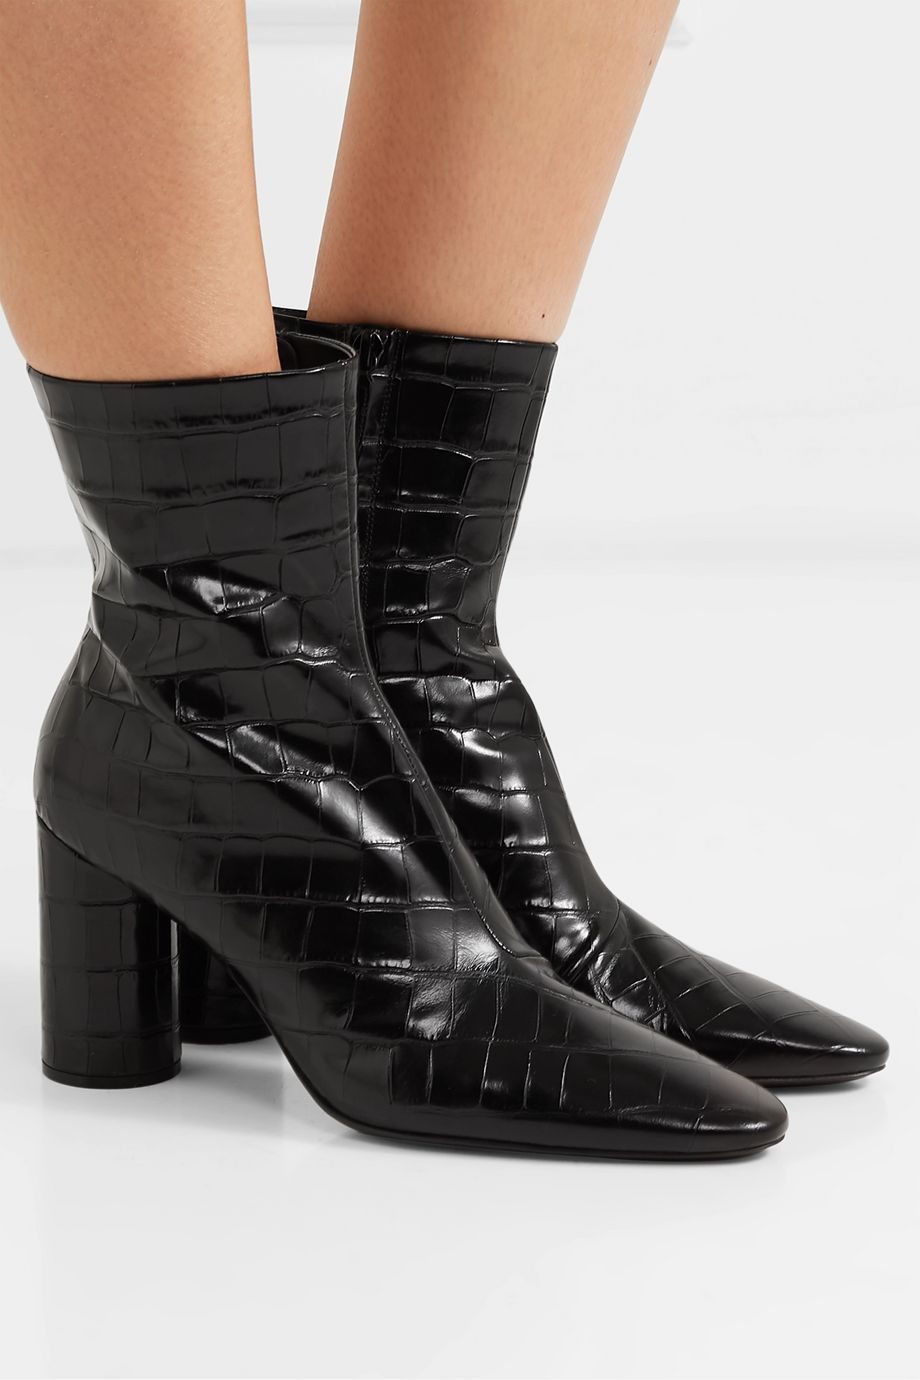 Balenciaga Oval croc-effect leather ankle boots